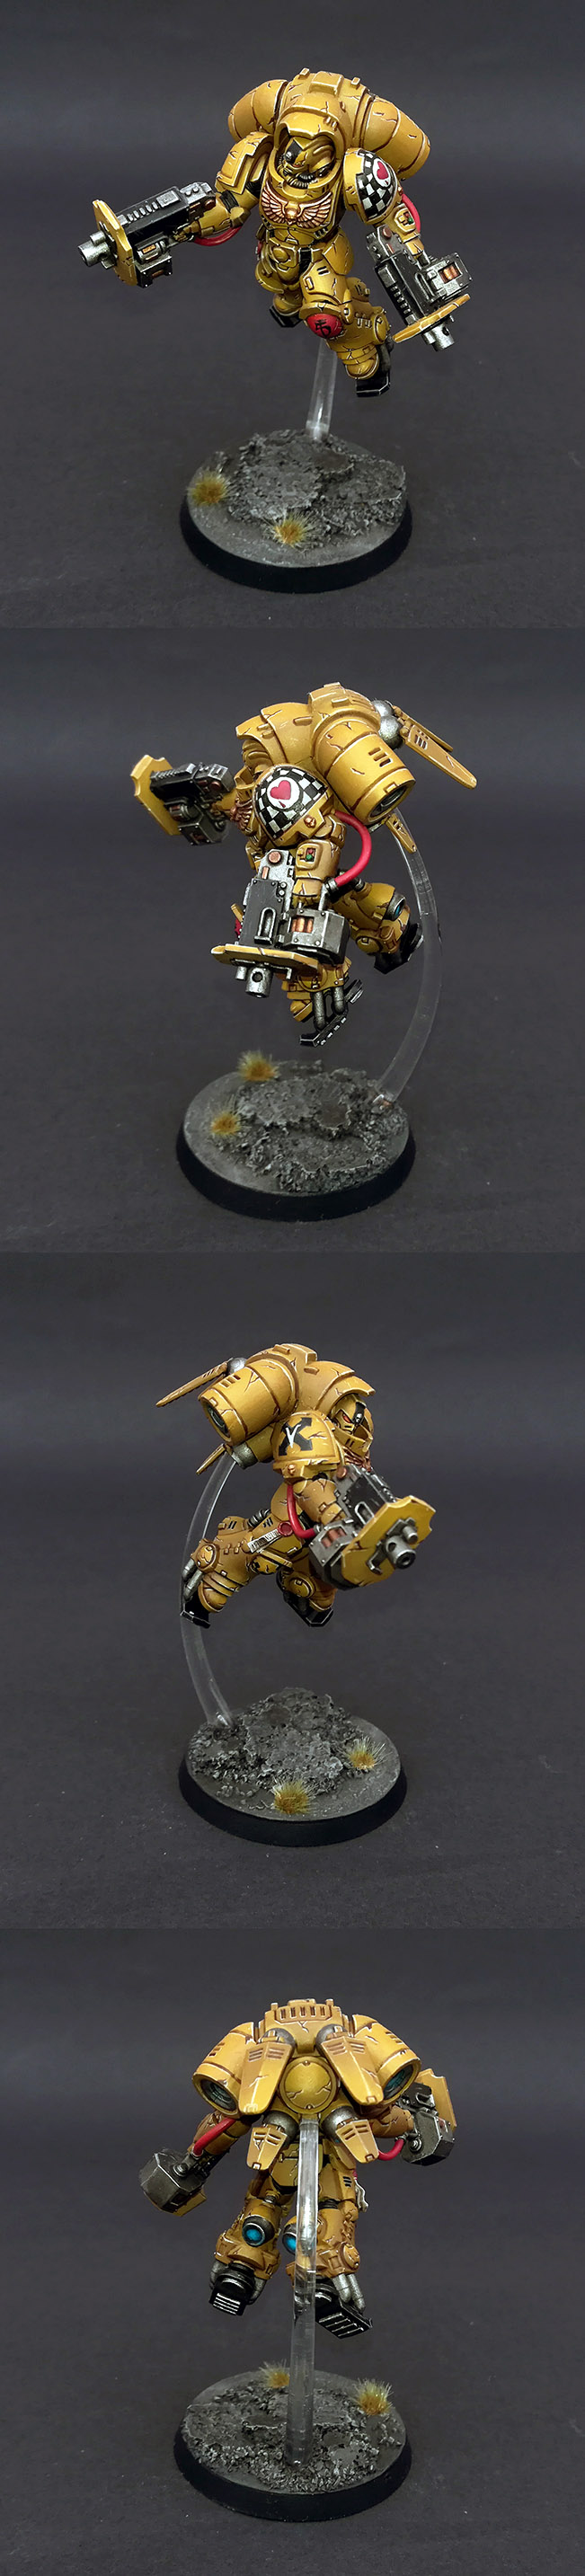 Lamenters Inceptor Seargant